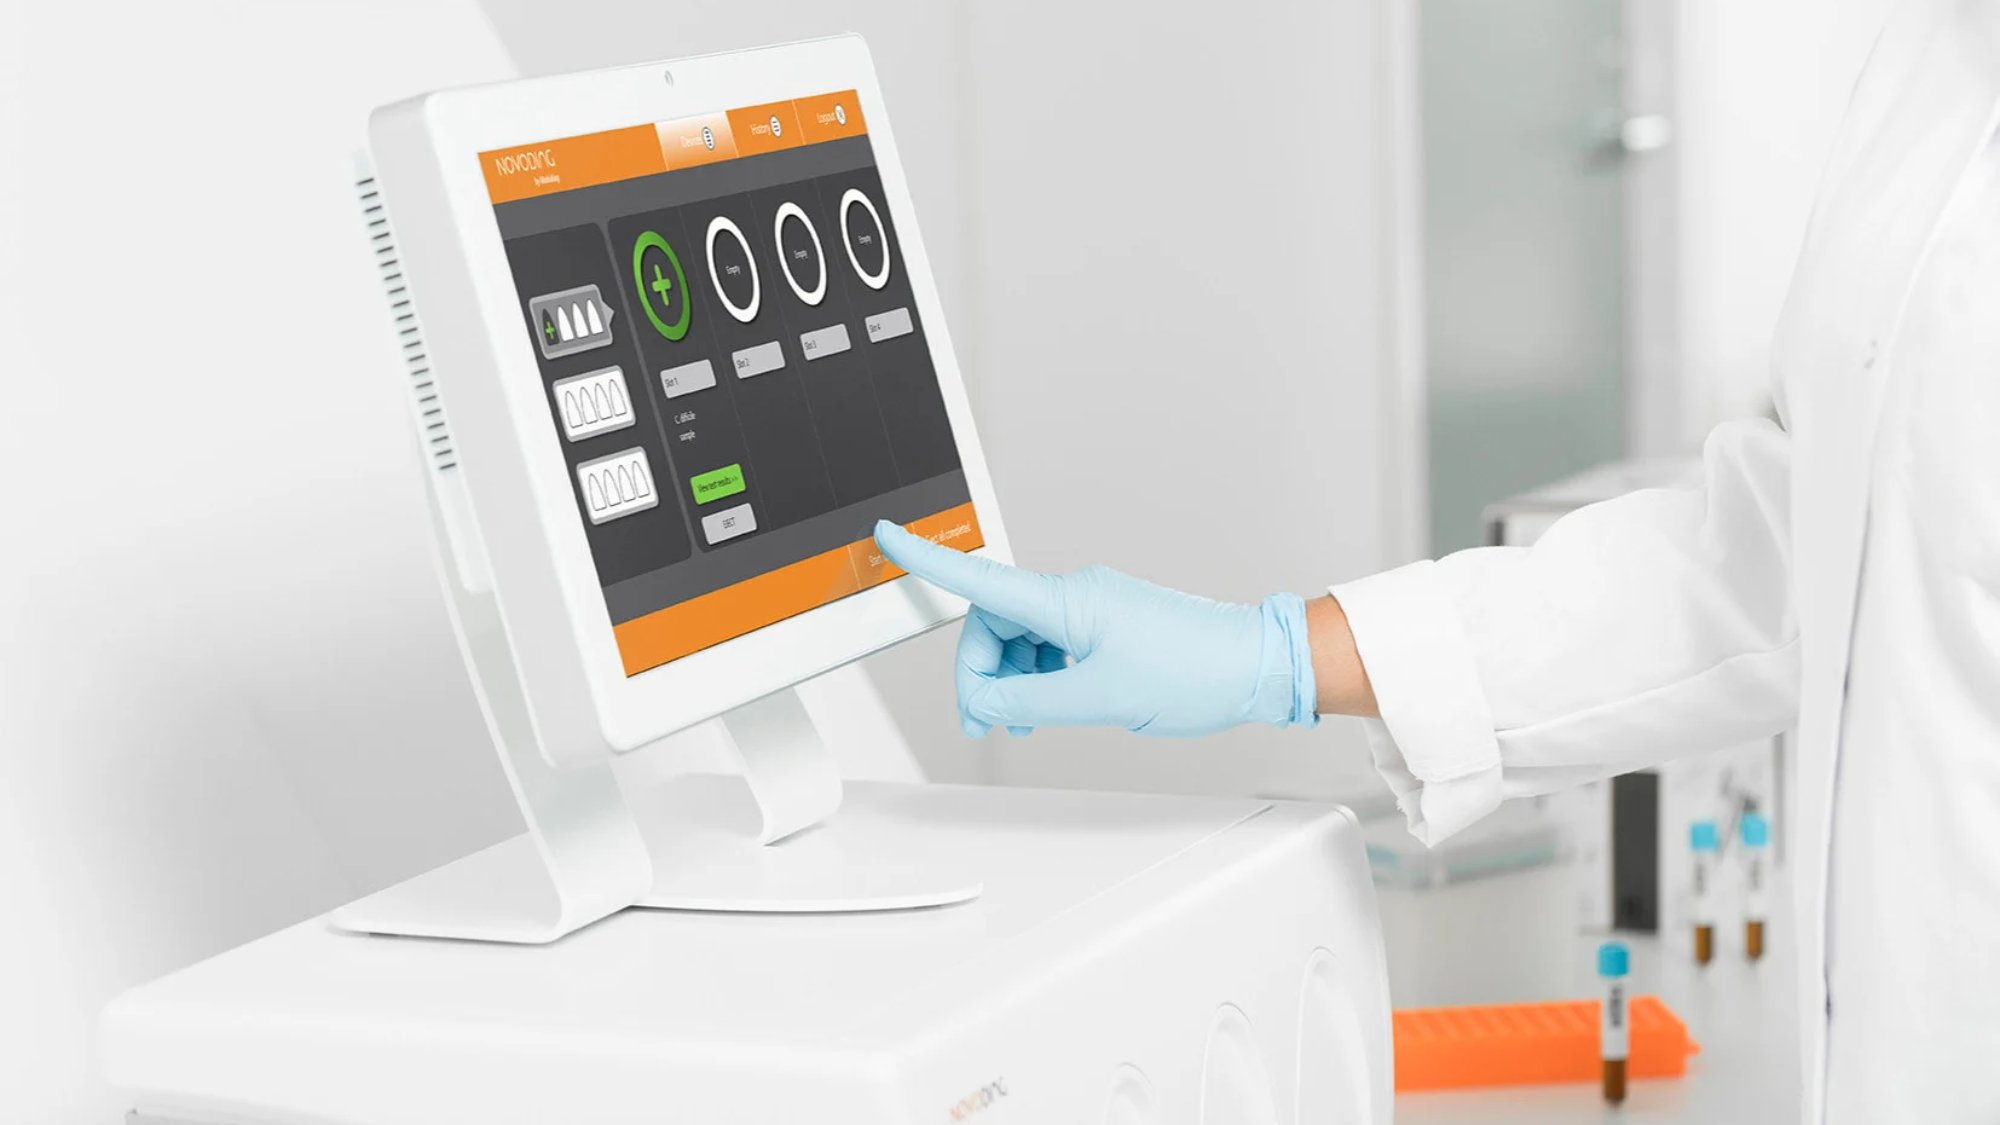 medical devices operated via touchpad